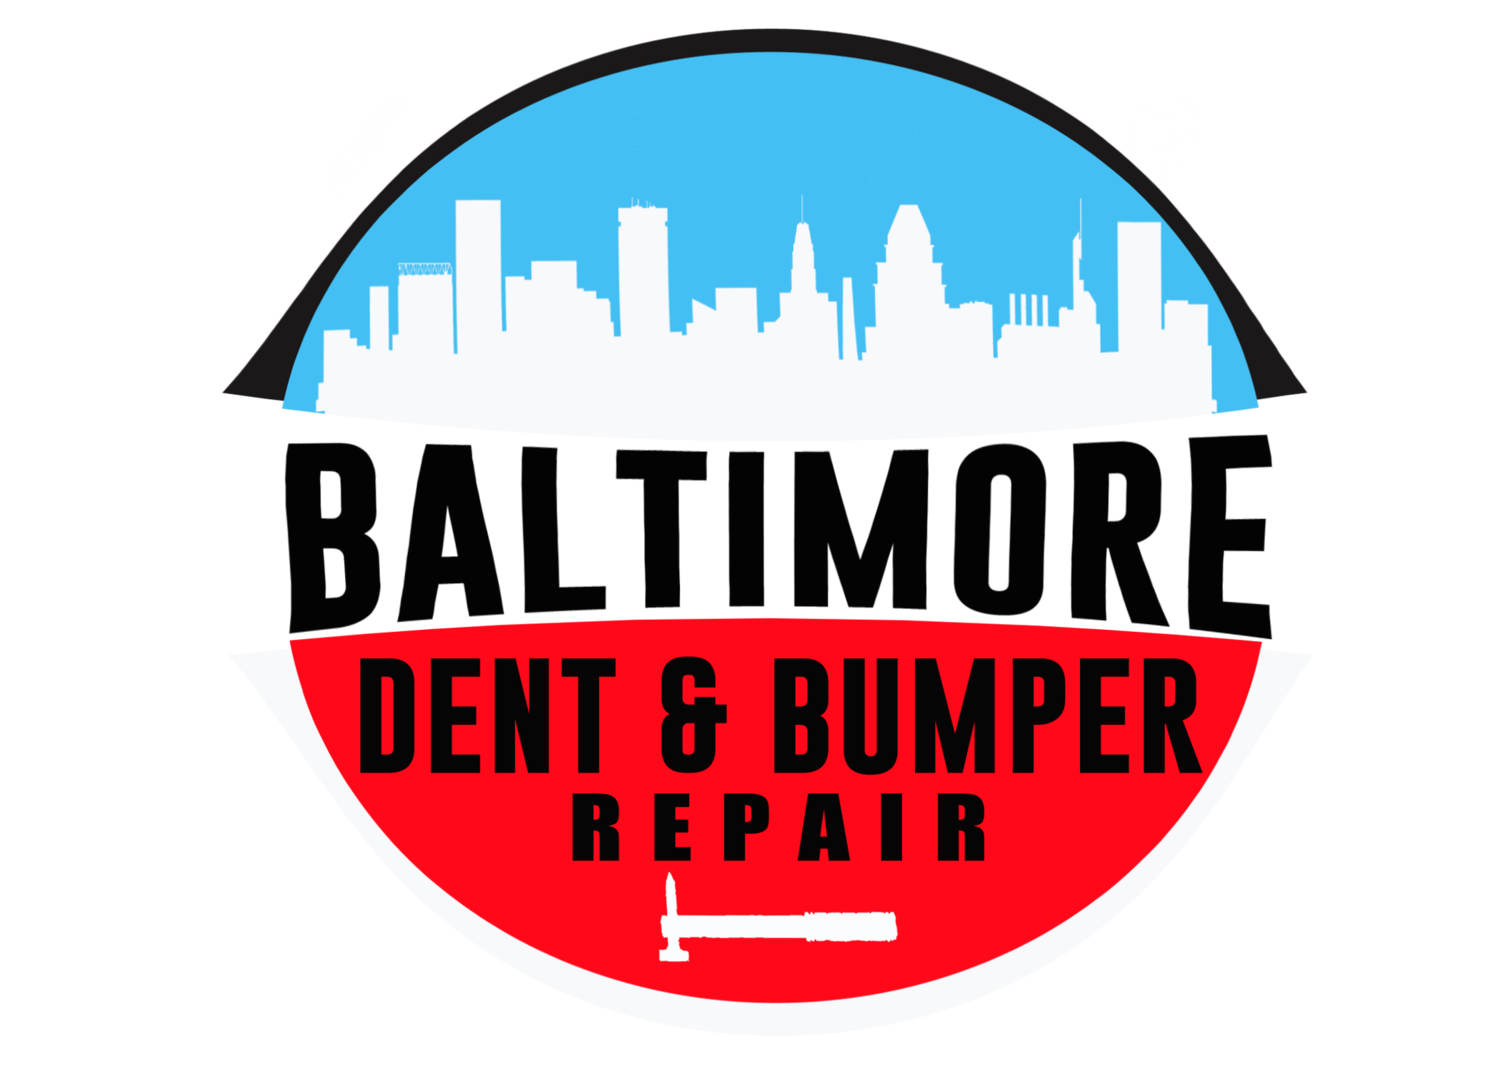 Baltimore Dent & Bumper Repair